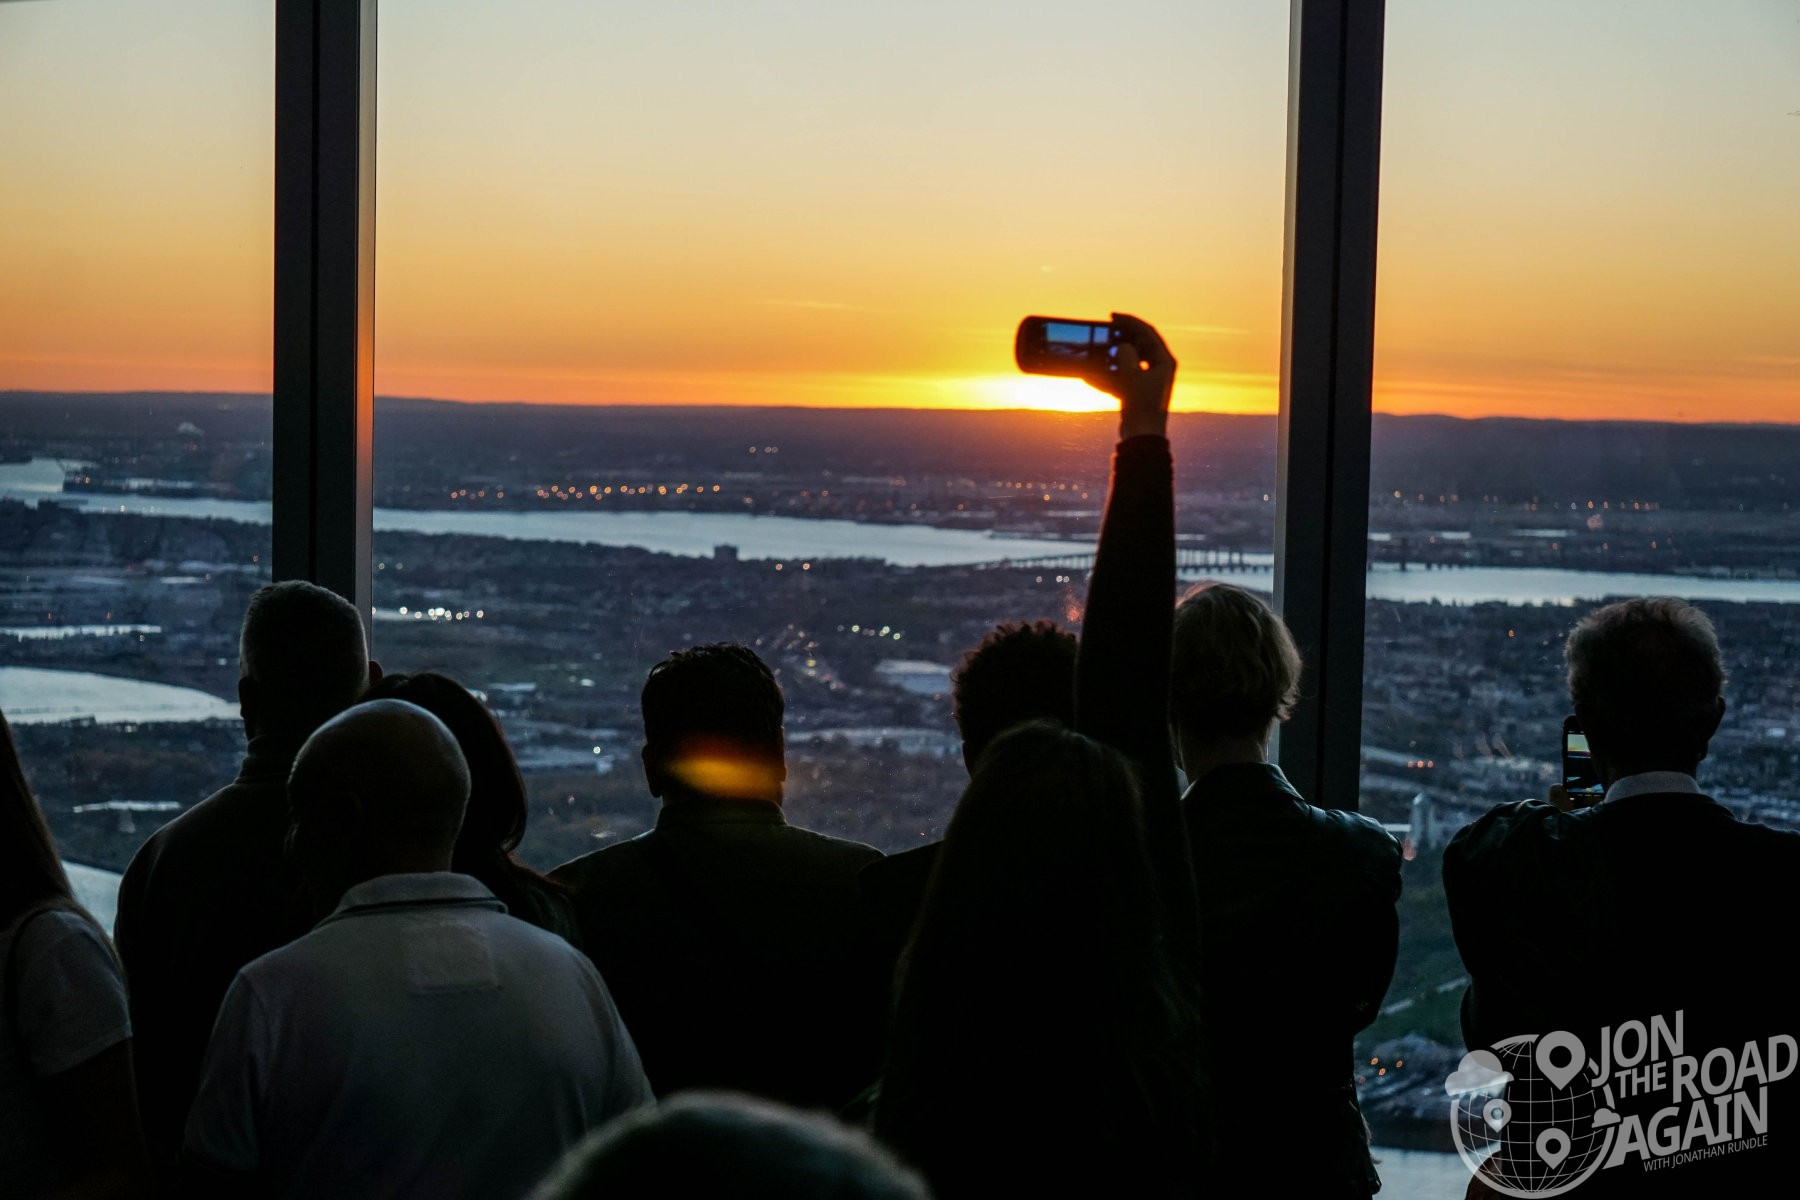 Sunset at One World Observatory